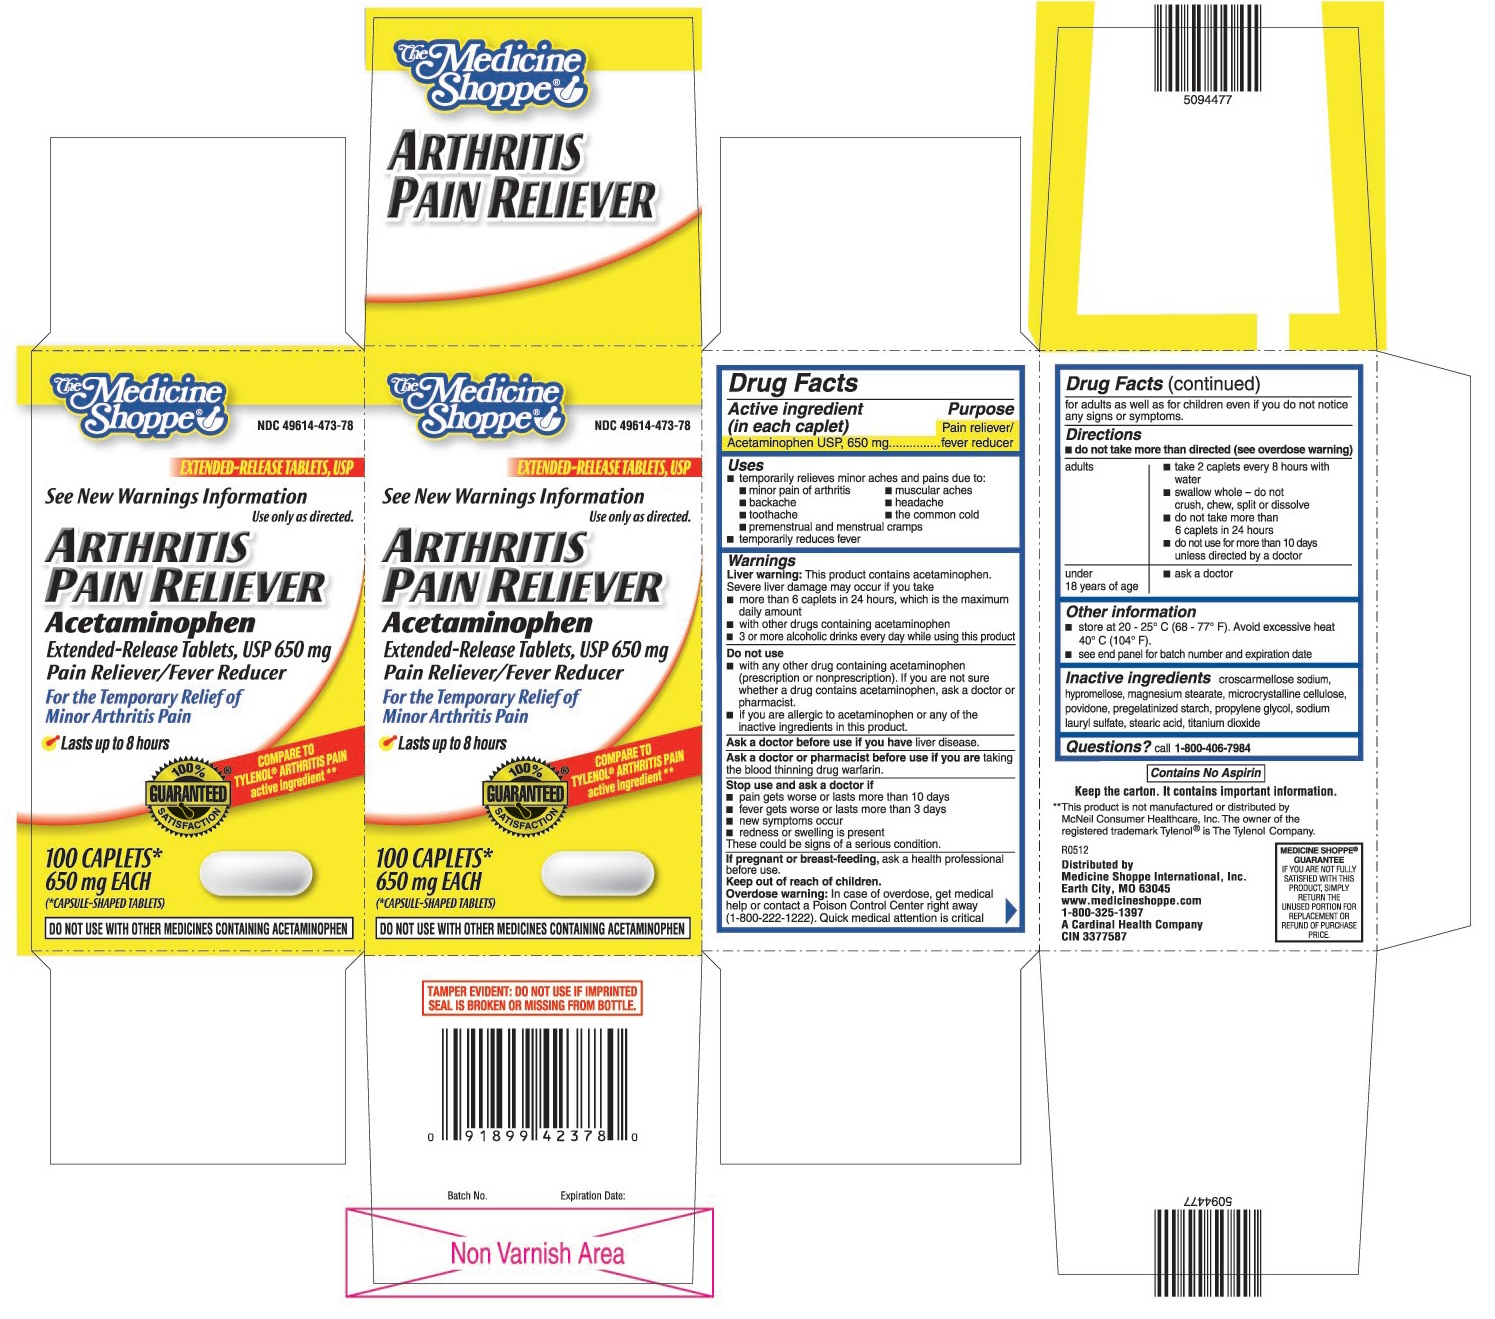 This is the 100 count bottle carton label for Medshoppe arthritis pain reliever Acetaminophen extended-release tablets, USP 650 mg.